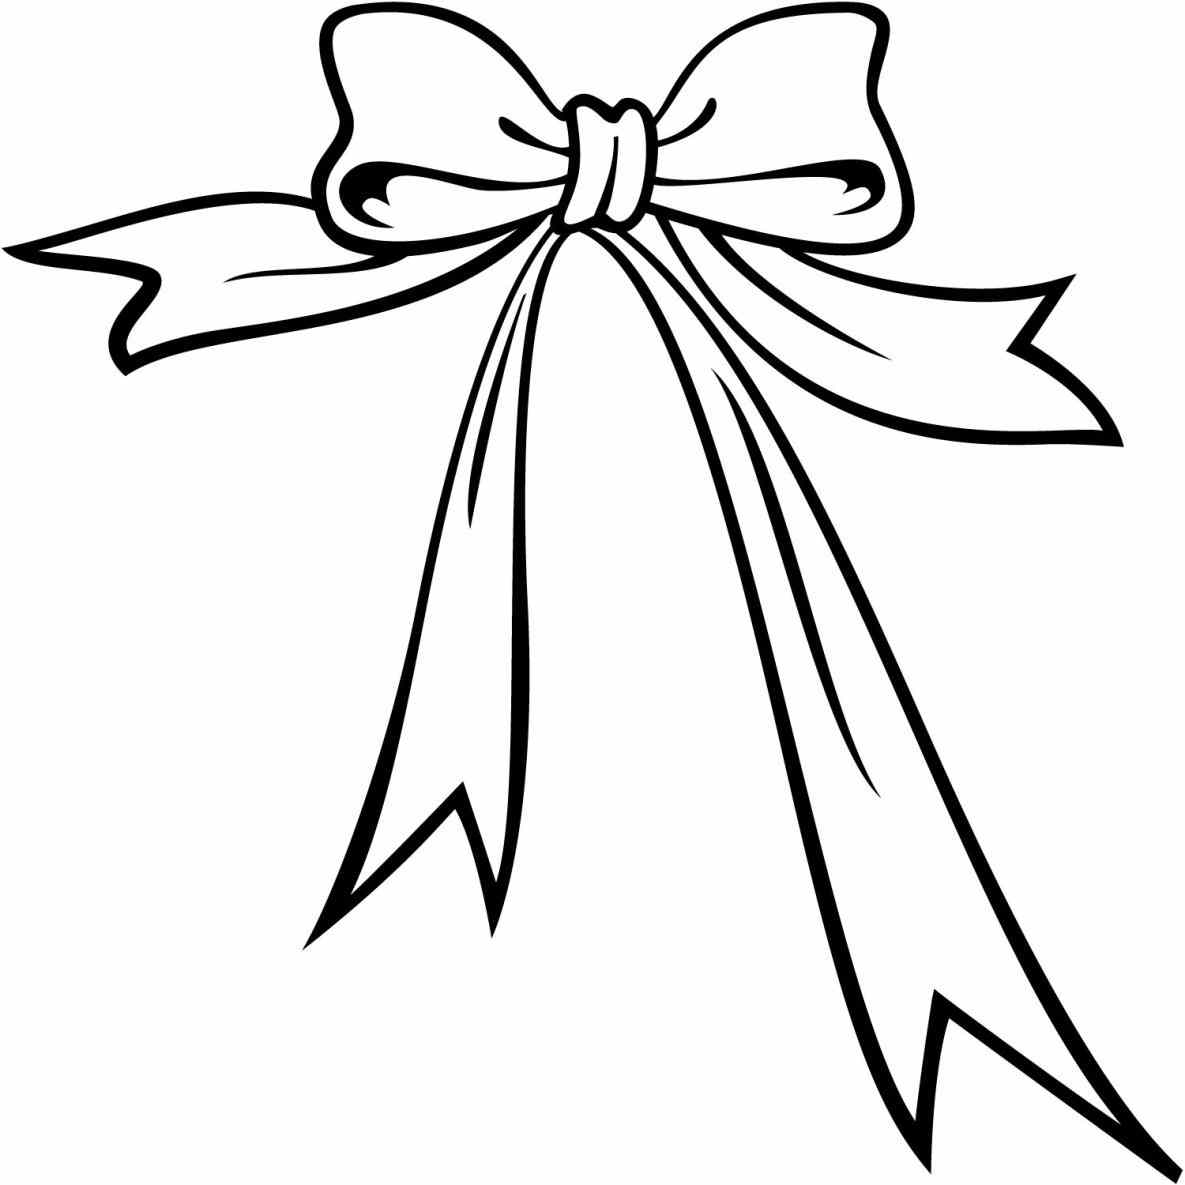 1185x1185 Ribbons And Bows Drawings